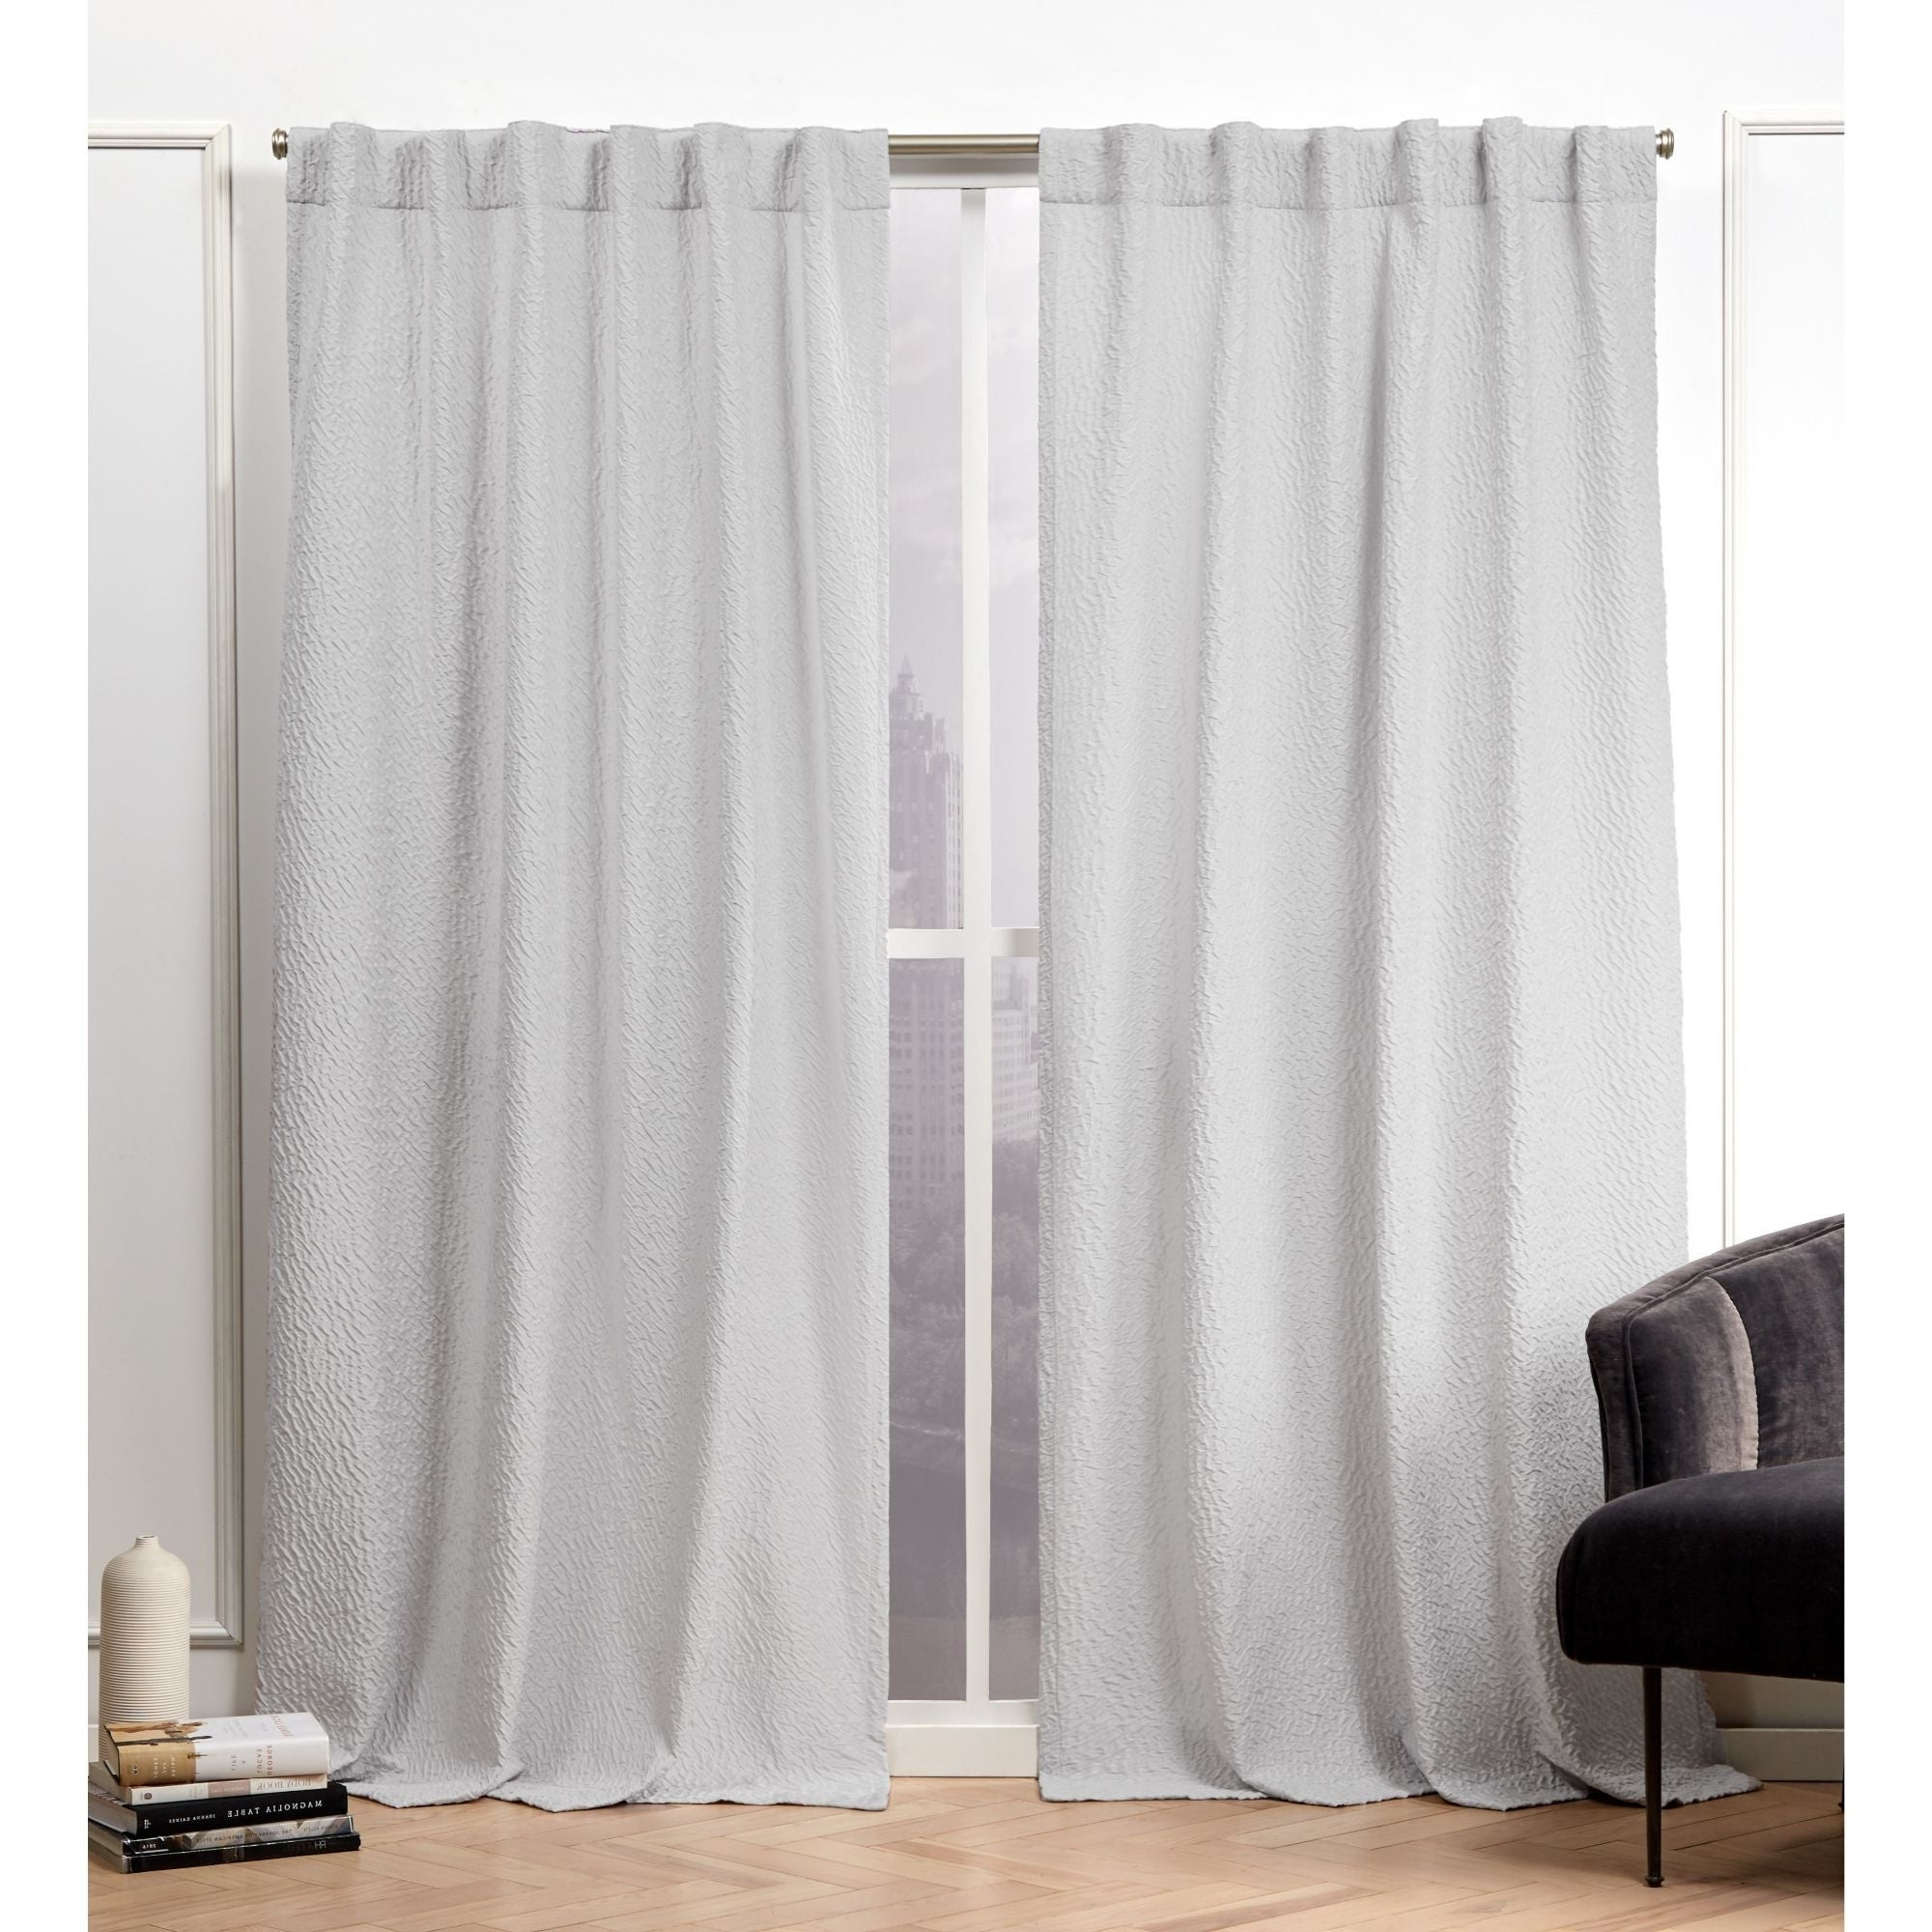 Luxury Collection Cranston Sheer Curtain Panel Pairs With Regard To Recent Nicole Miller Textured Matelassé Hidden Tab Top Sheer Panel Pair (View 5 of 20)